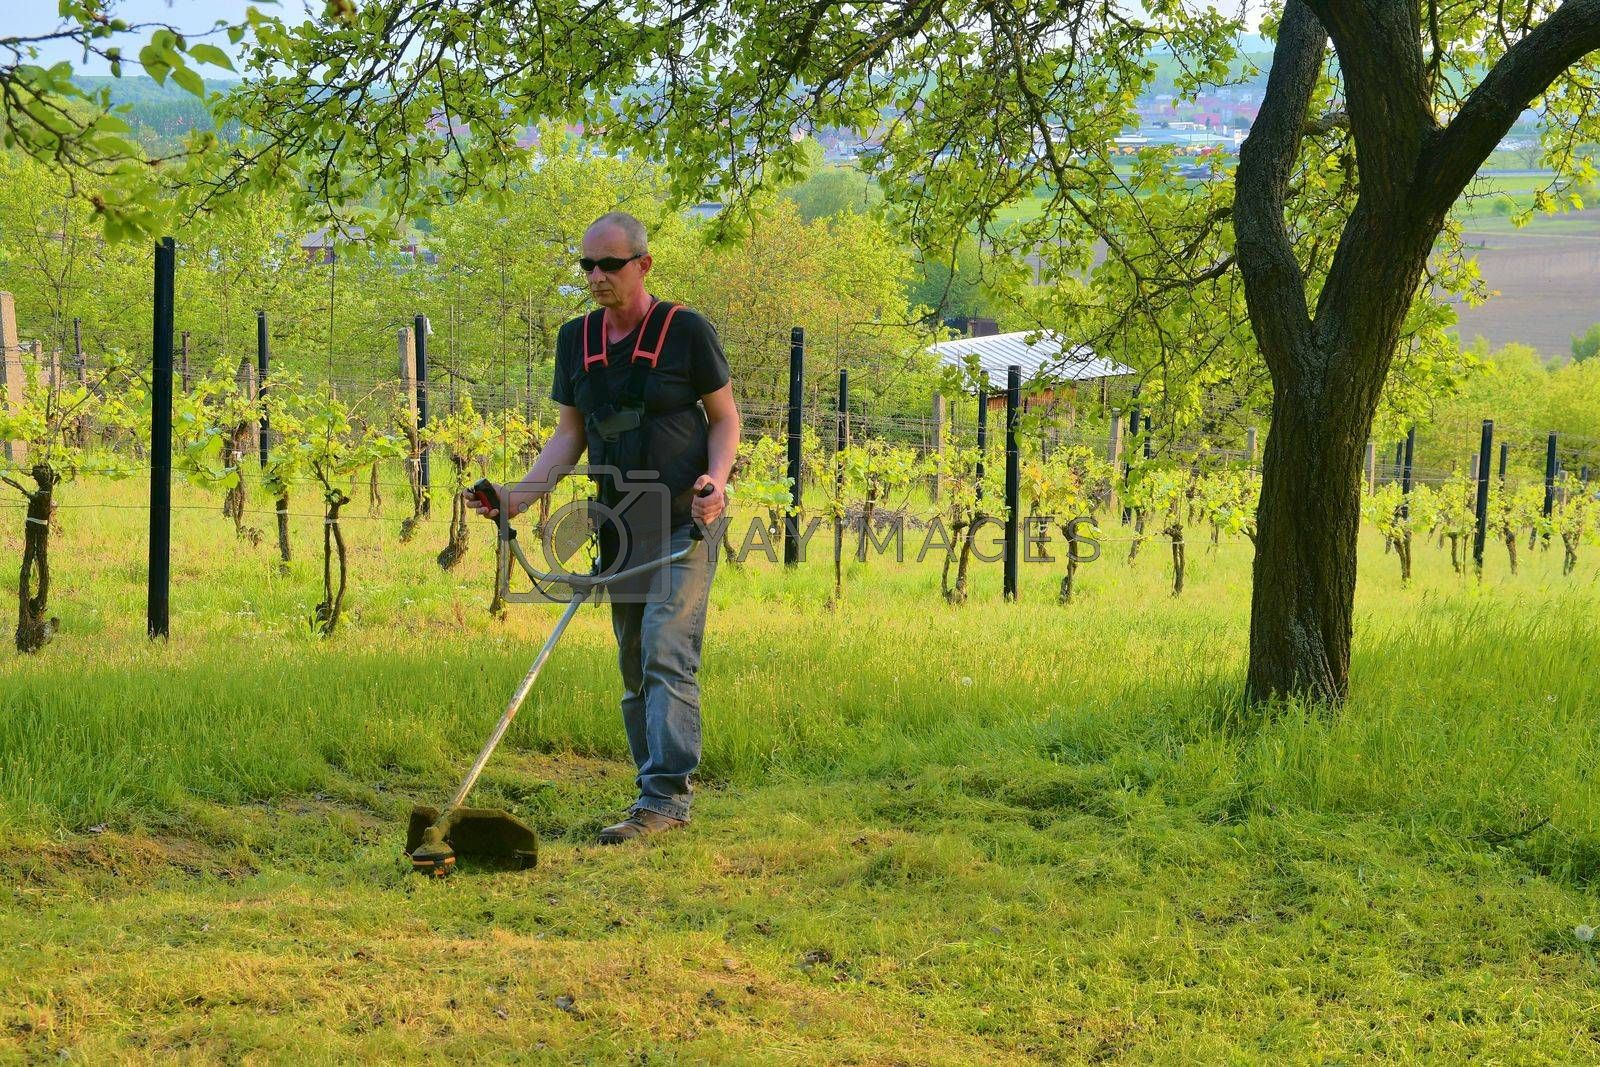 Midle aged man using a brush cutter. Mature man in the garden. Gardening concept.